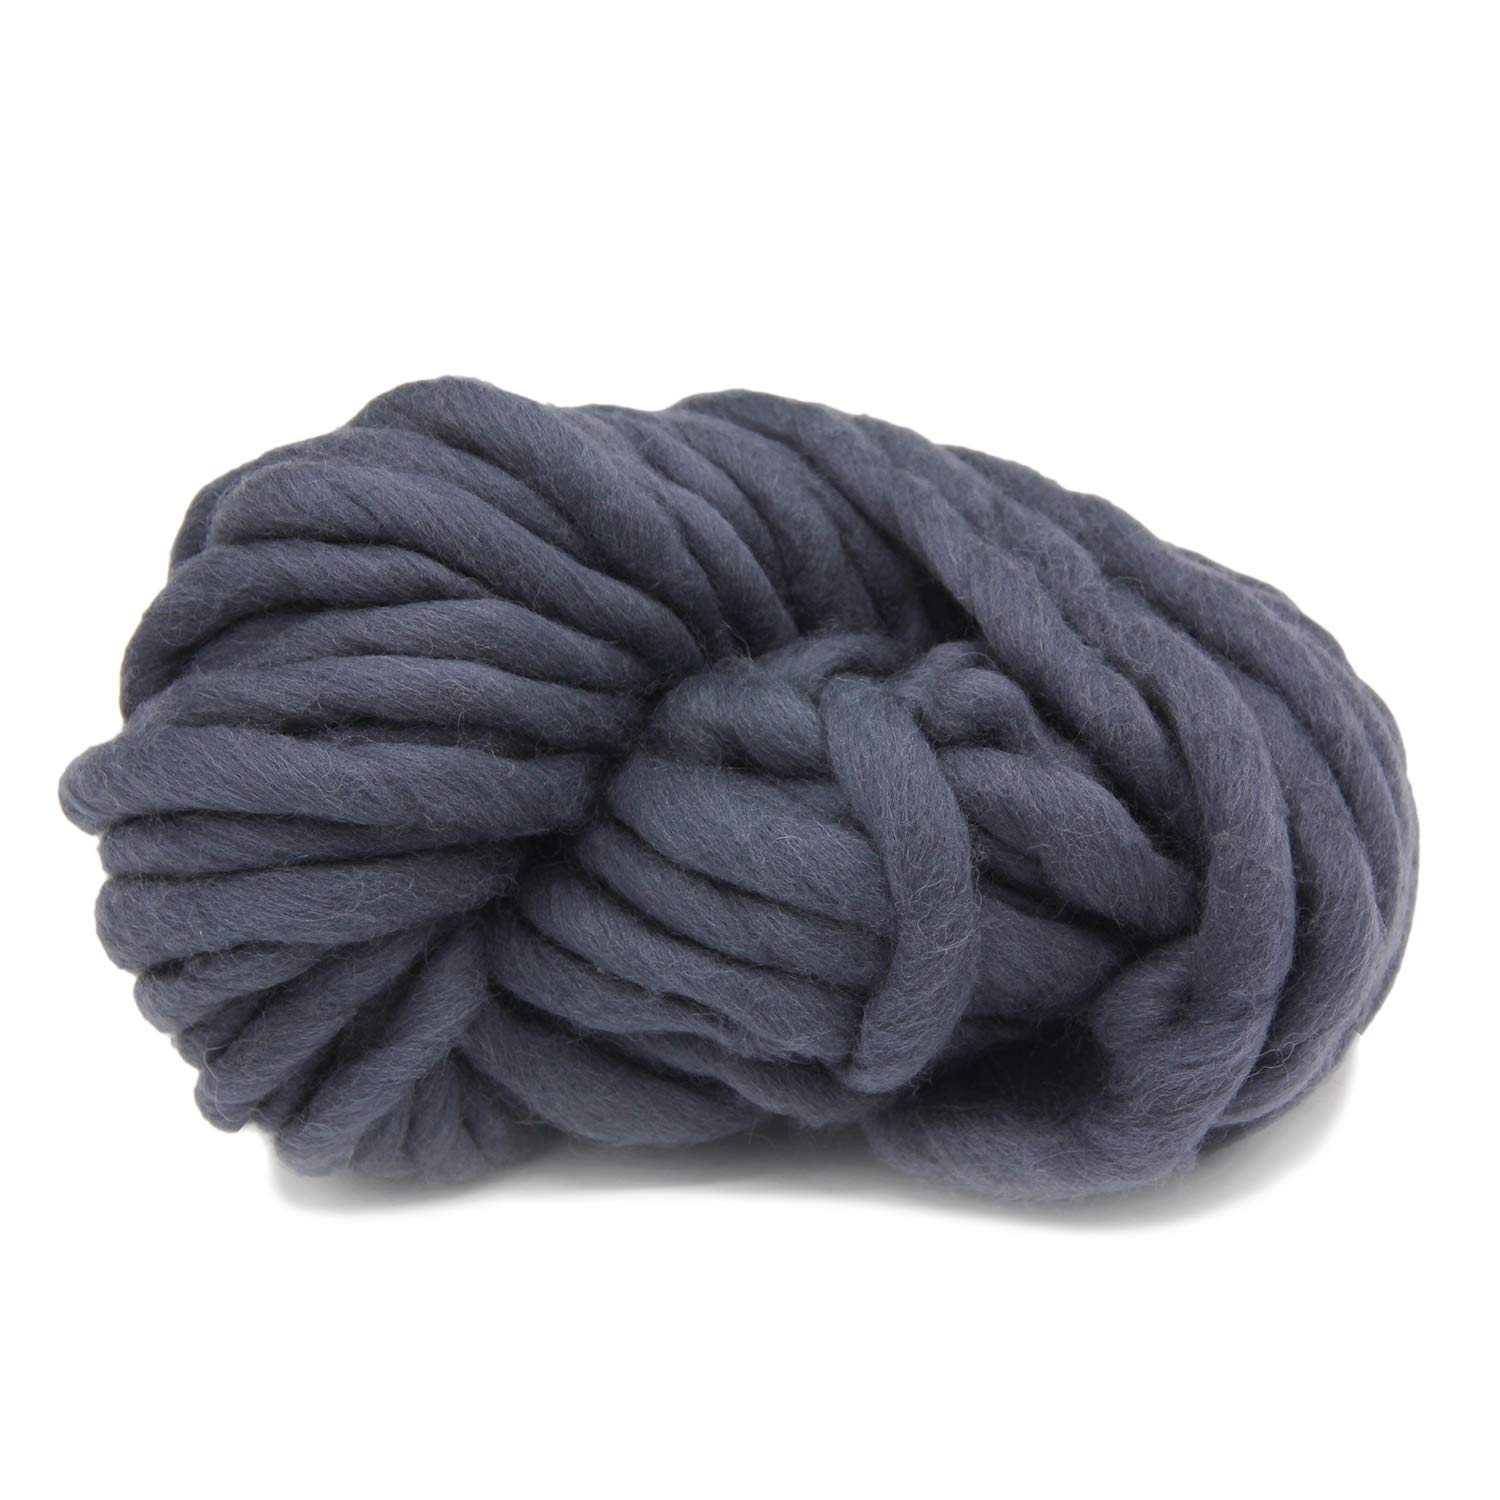 Merino Wool Super Chunky Yarn - Wool Roving Yarn for Finger Knitting, Crocheting Felting, Making RugsBlanket and Crafts (Black) FLORAVOGUE BKY-1002-Black